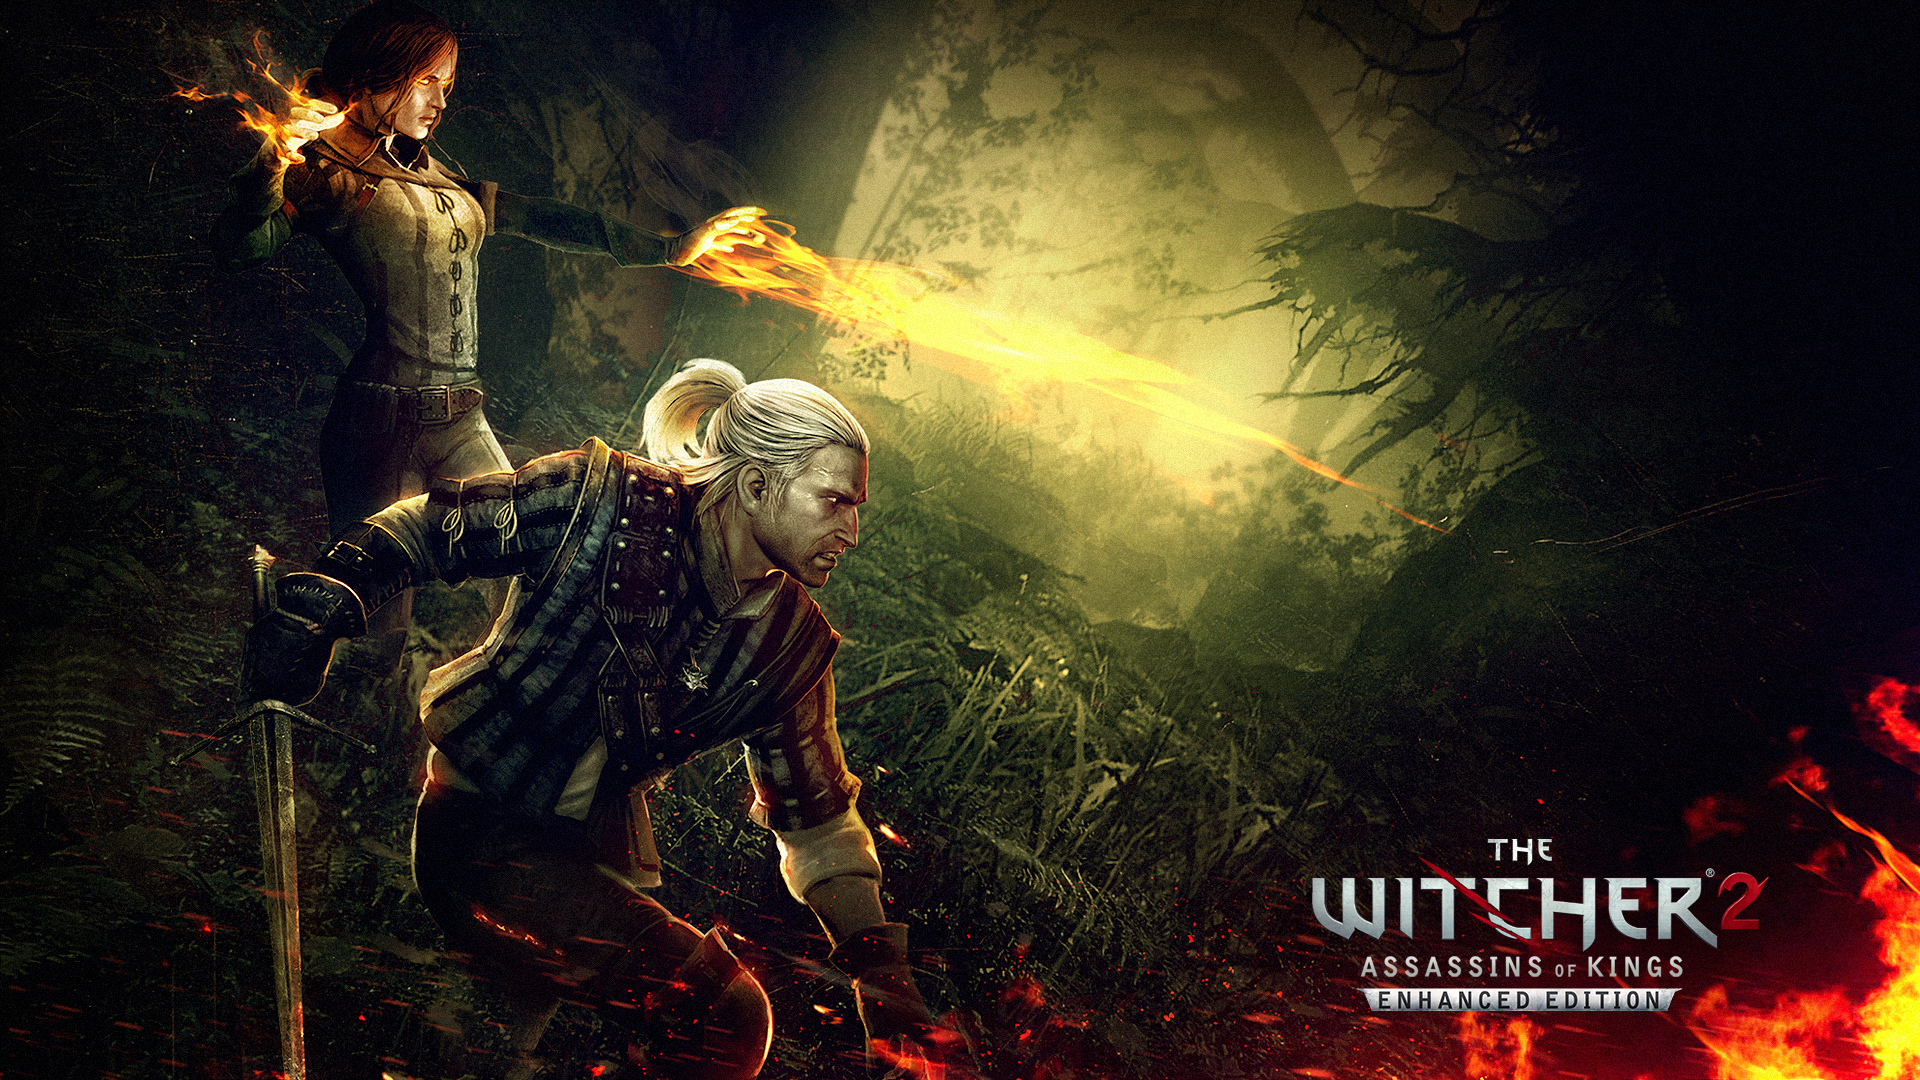 Geralt and Triss Wallpaper from The Witcher 2 Assassins of Kings 1920x1080